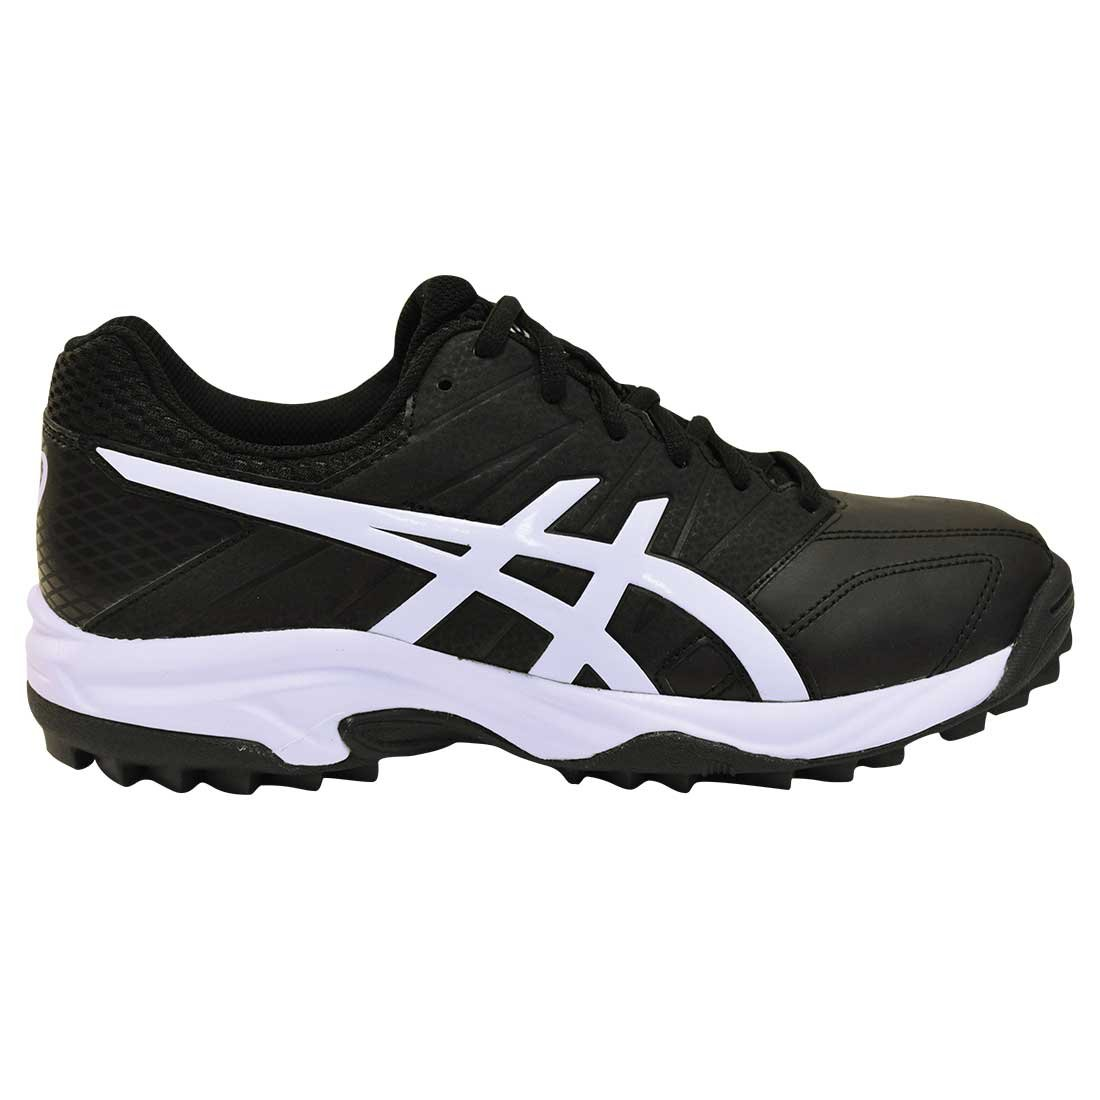 ASICS Gel-Lethal MP7 Turf Shoe- Black - Women's Size 10